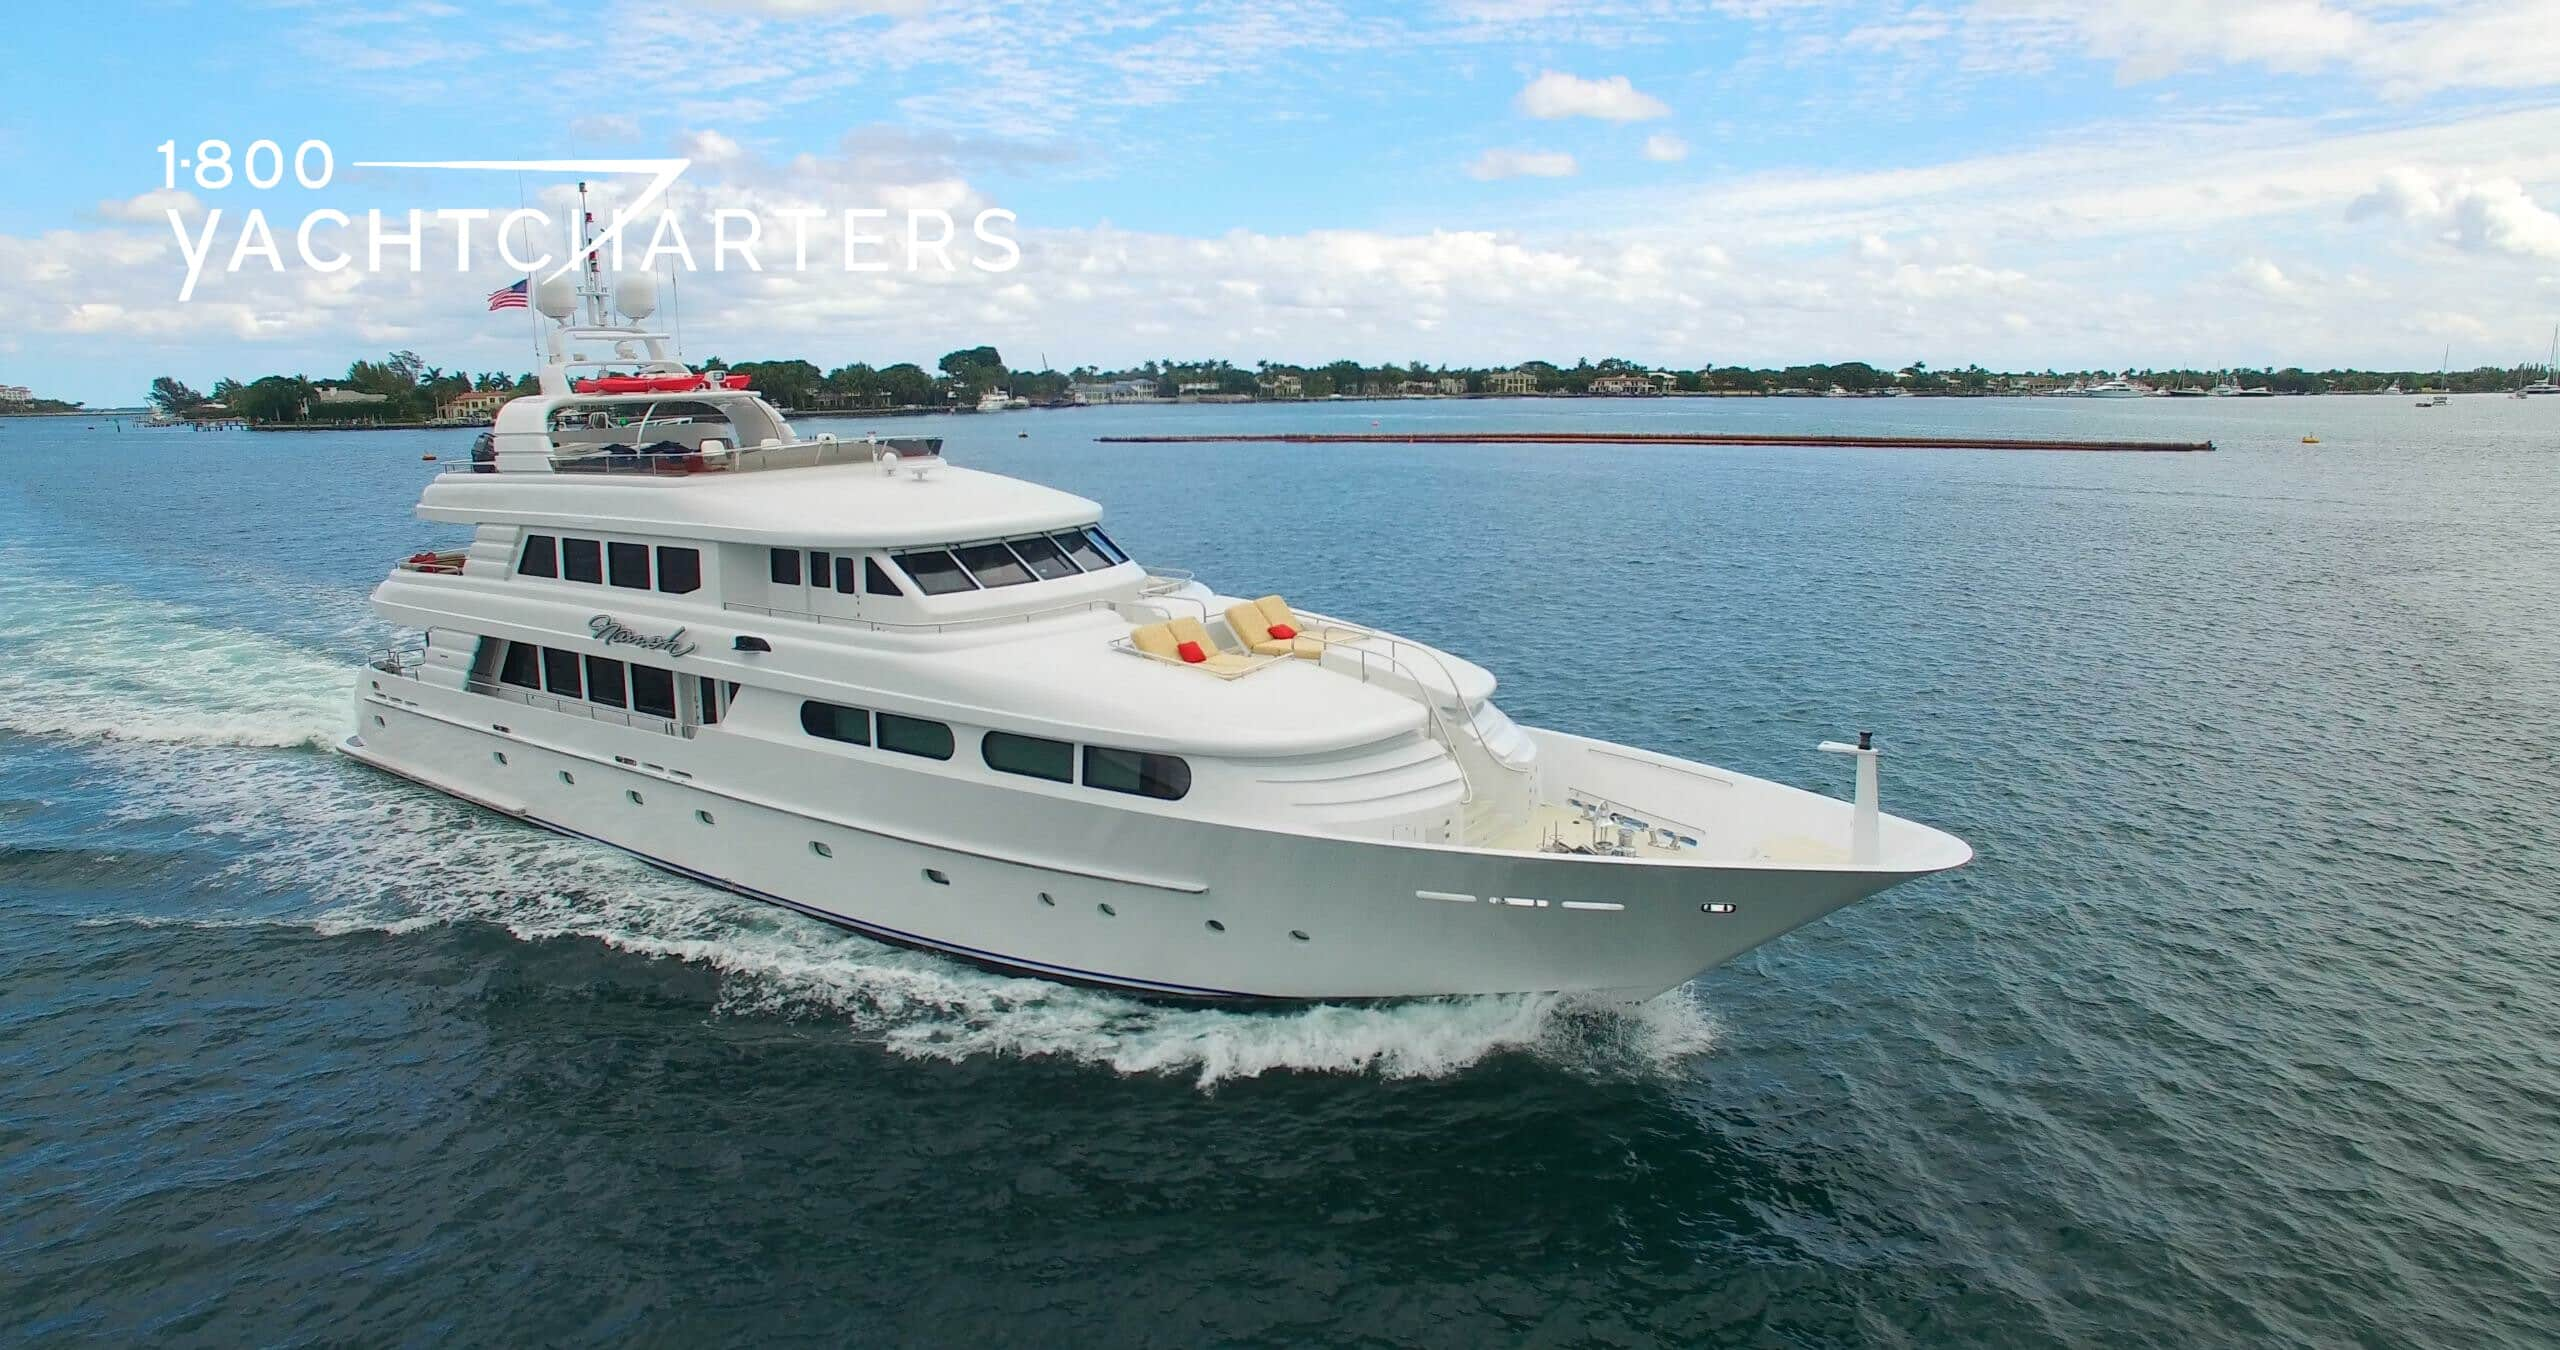 Review. Quarter profile photograph of motoryacht Namoh. She is heading toward the bottom right side of the photo. The yacht is all white. There is an island in the background. There are people lying on the deck of the yacht.